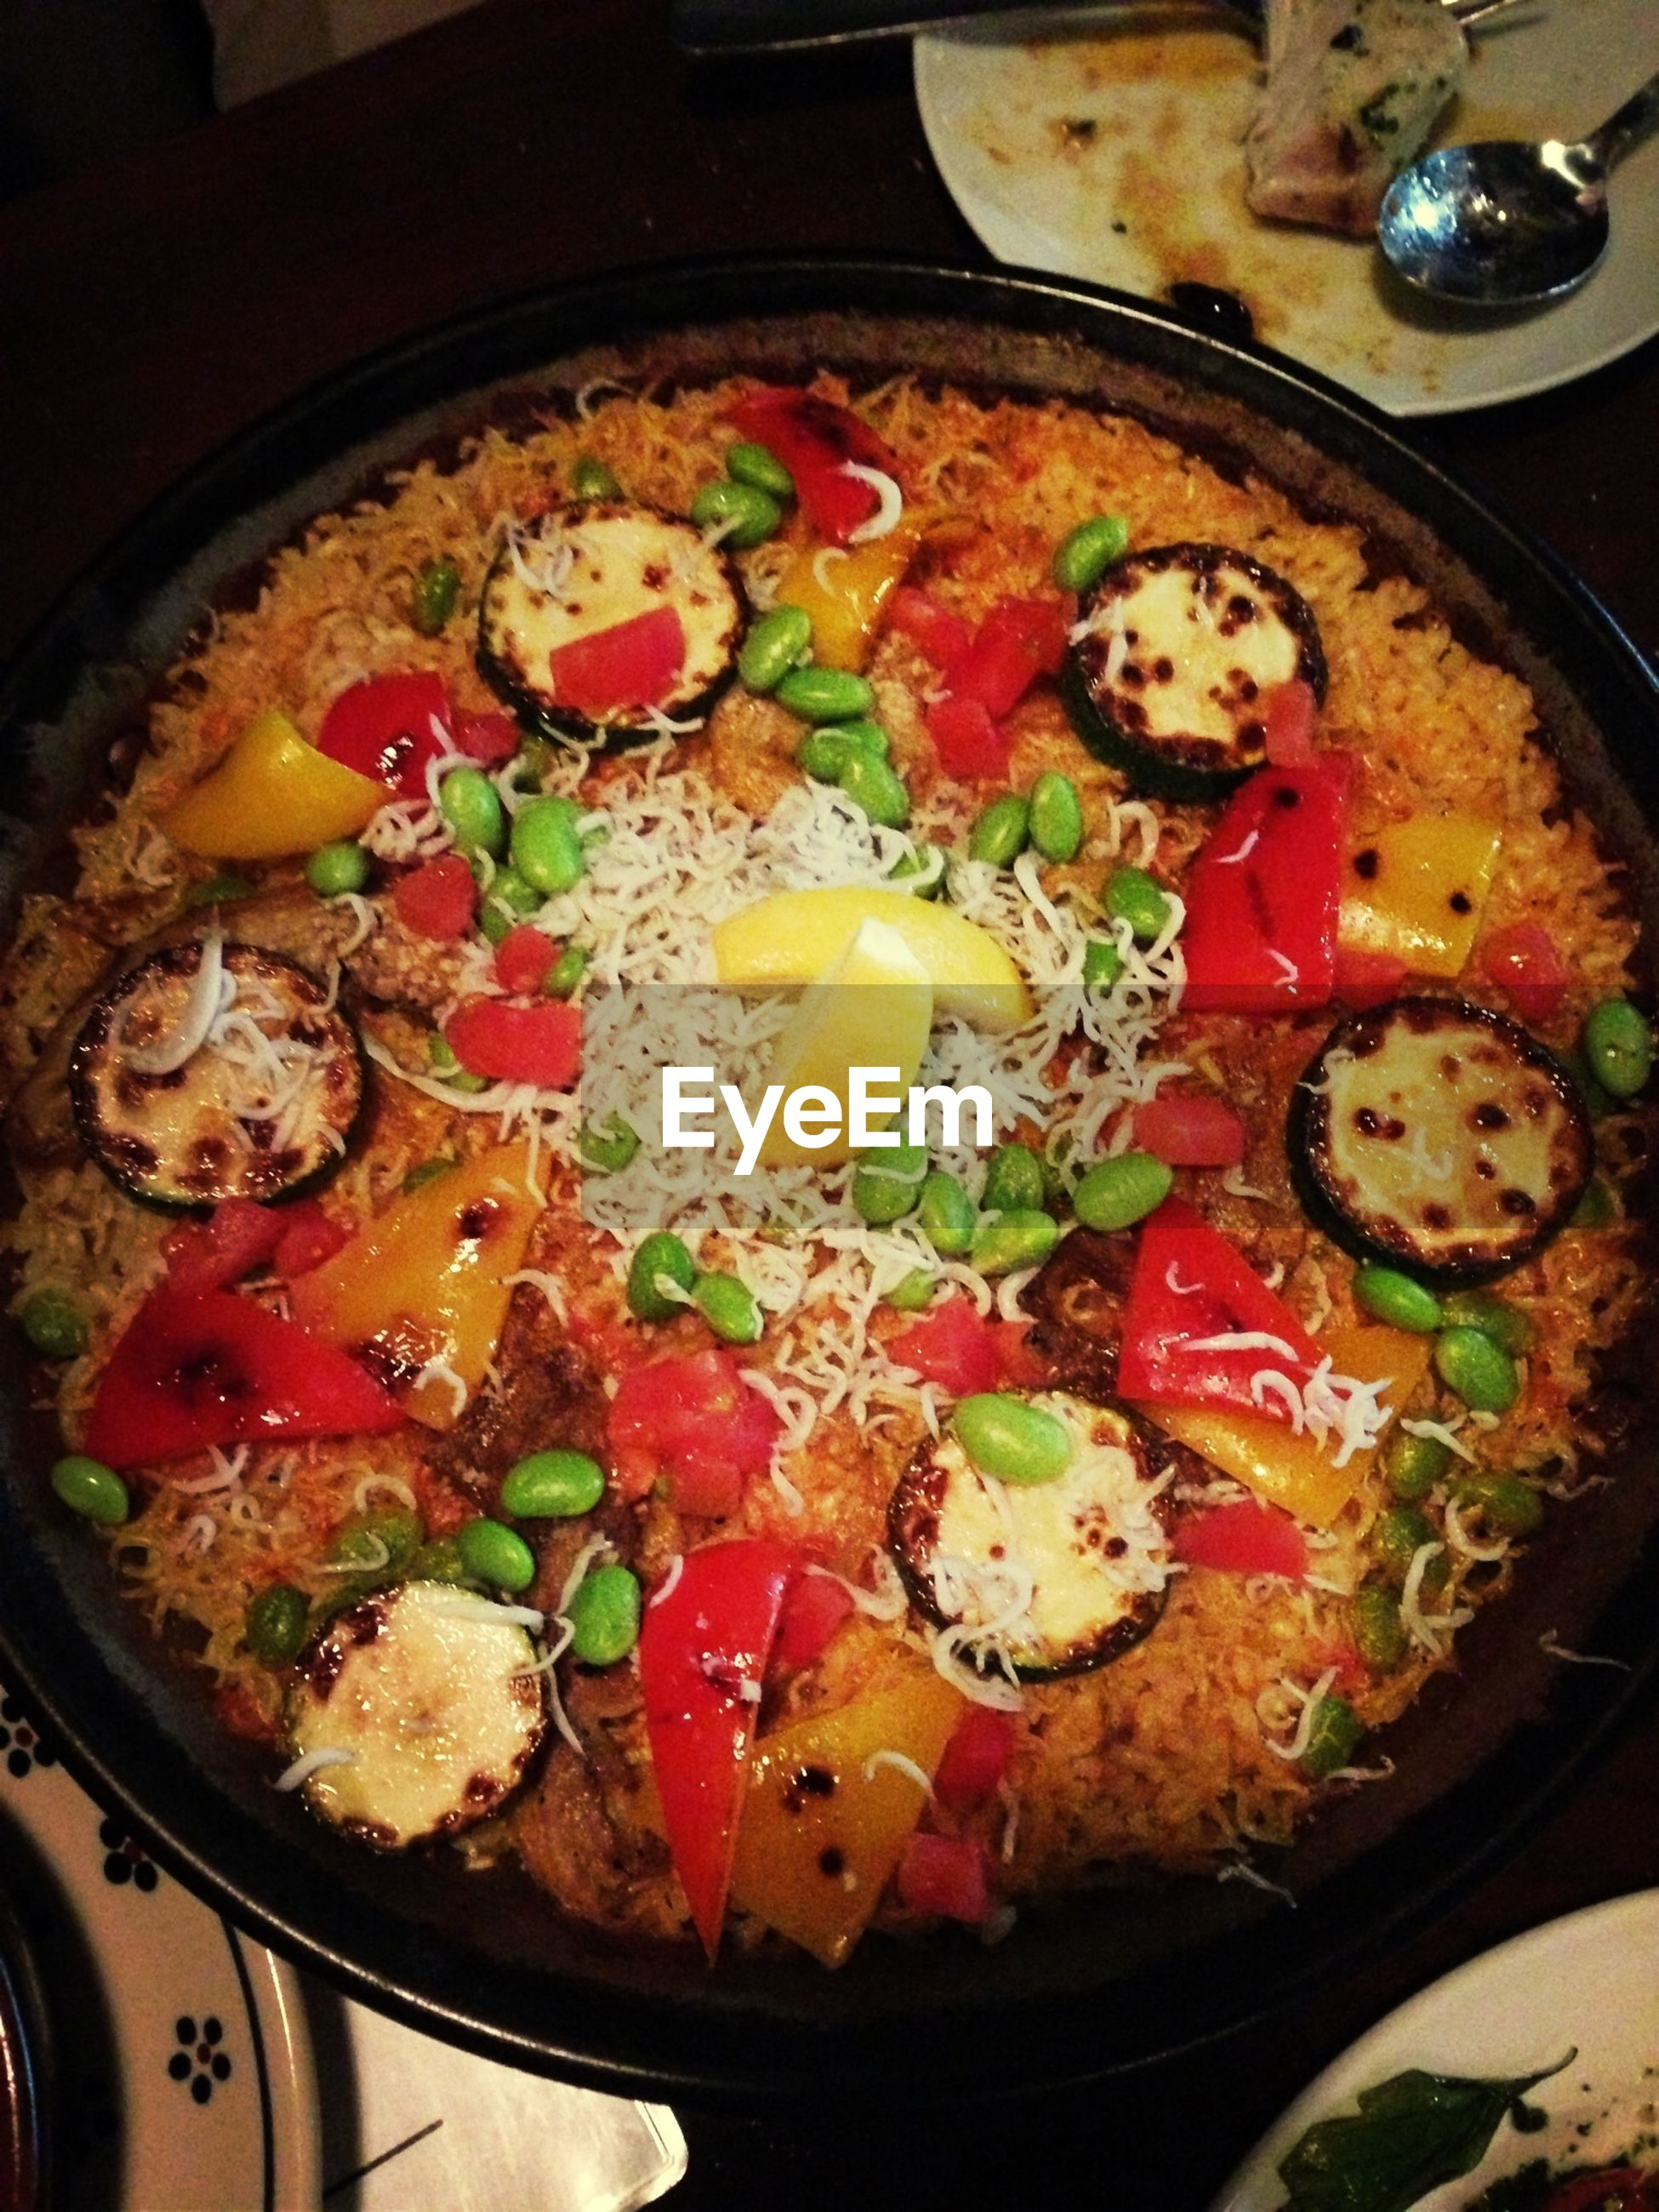 food, food and drink, freshness, indoors, ready-to-eat, healthy eating, meal, still life, high angle view, plate, meat, bowl, indulgence, vegetable, serving size, close-up, pizza, preparation, cooking, table